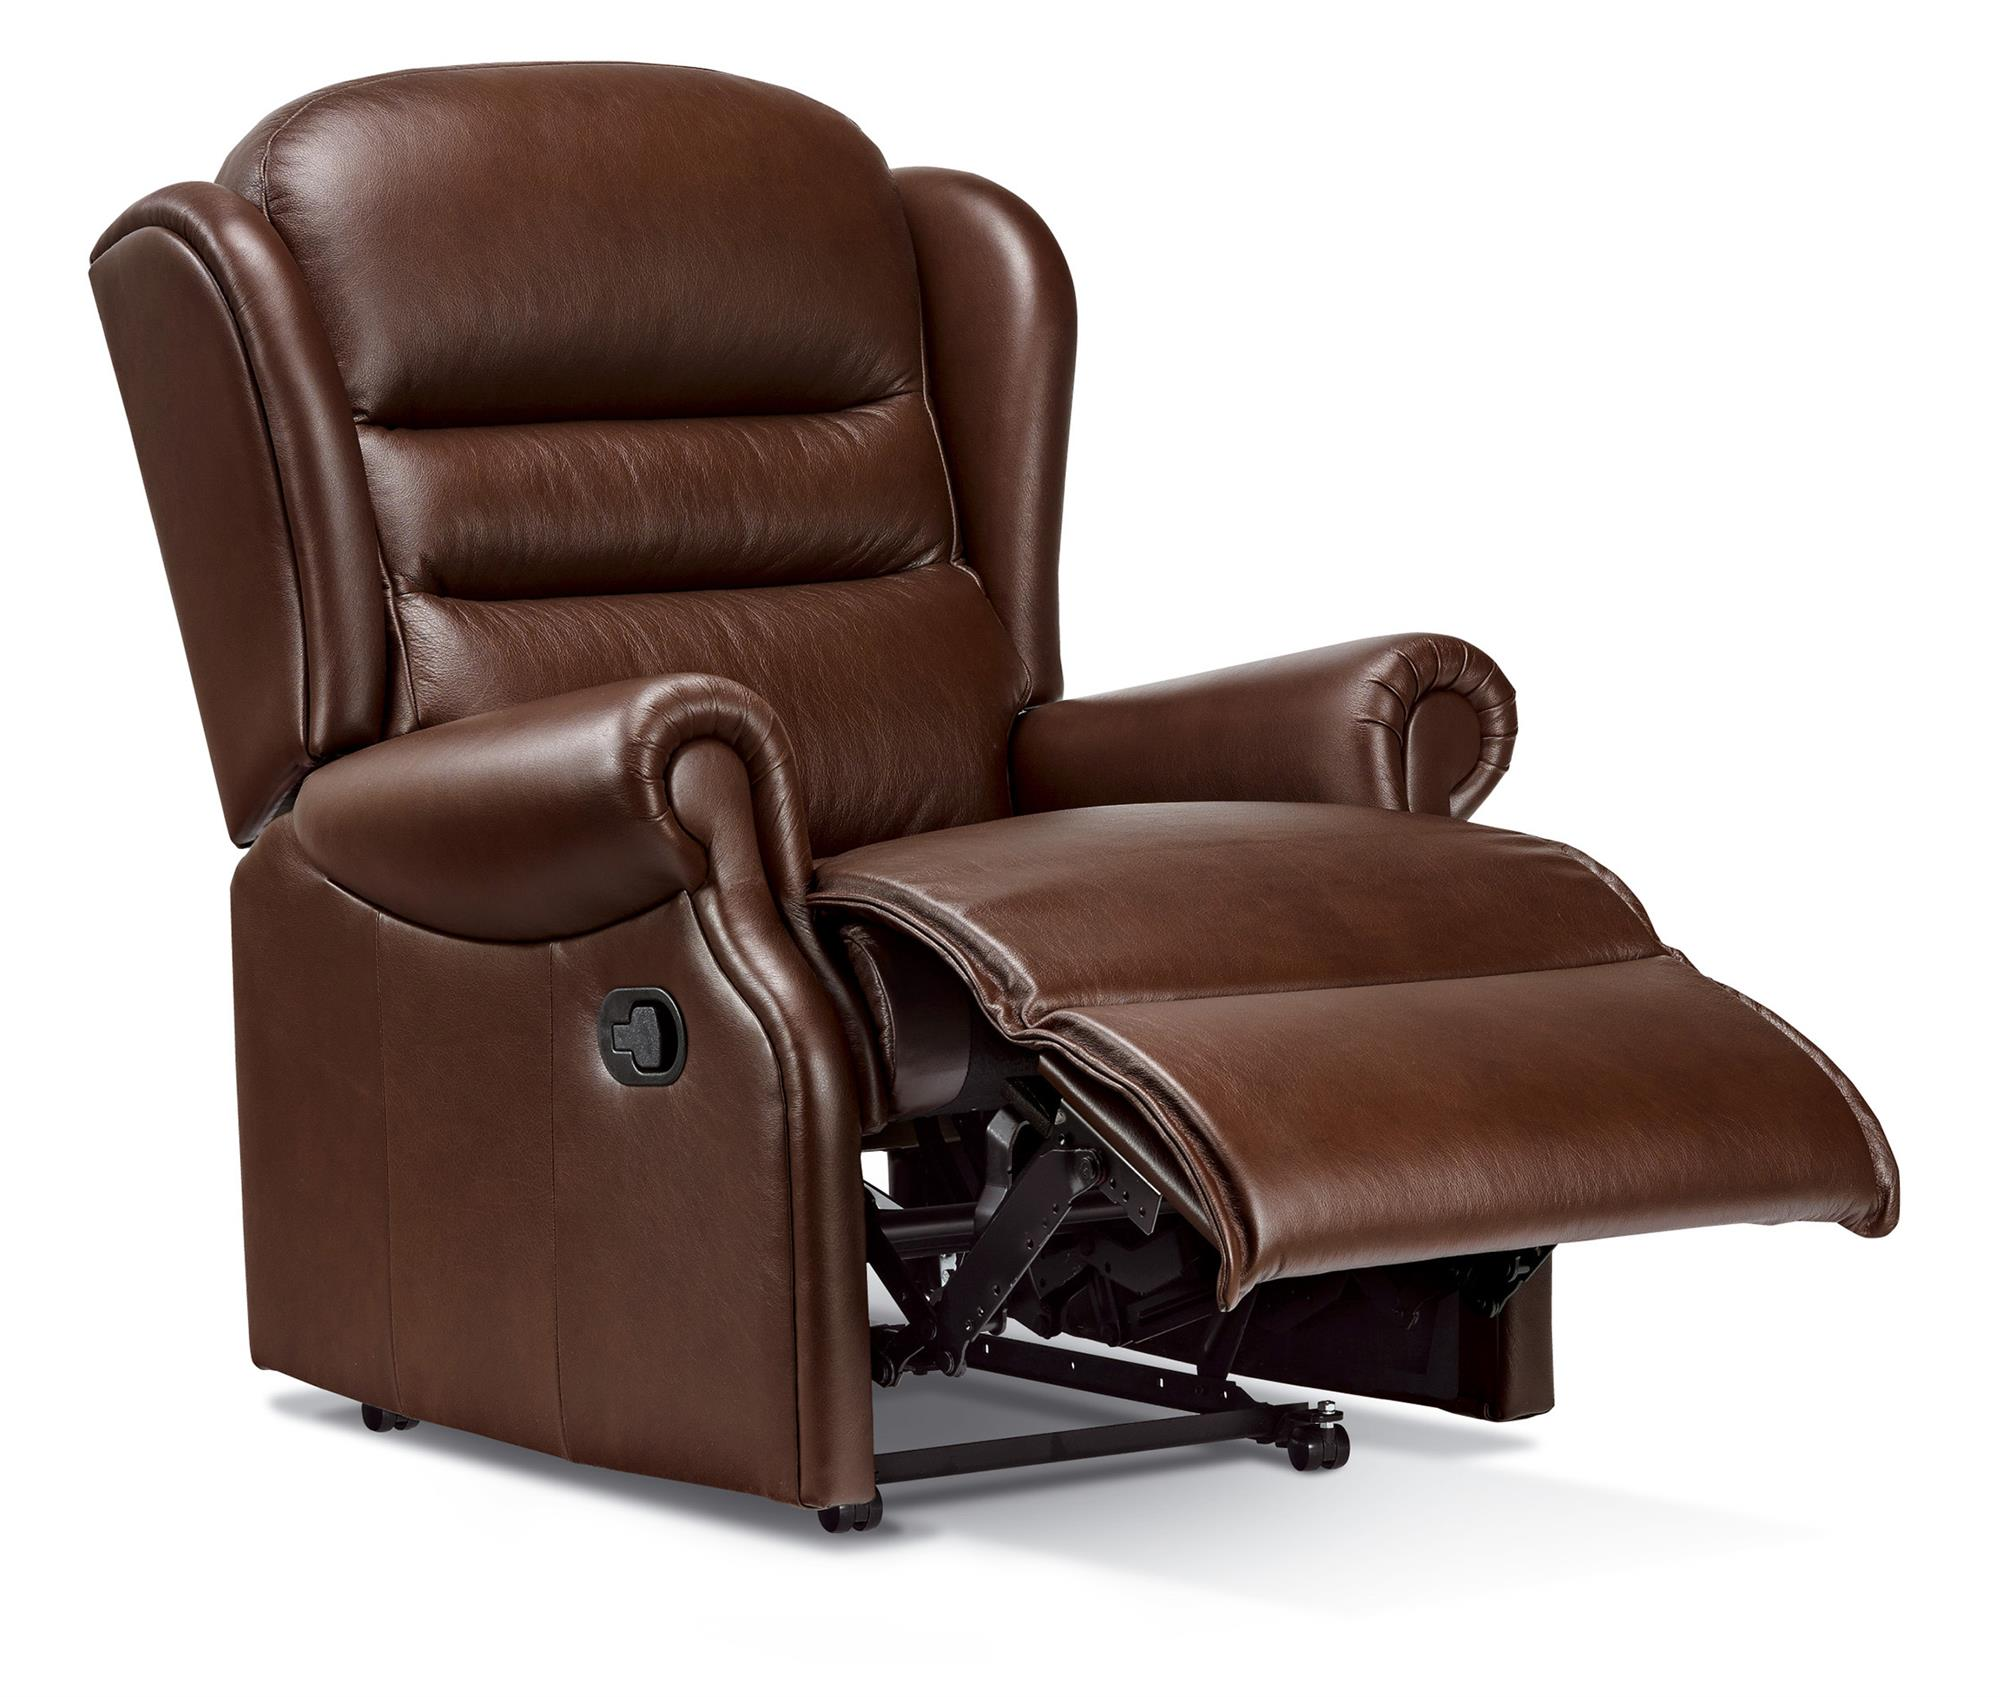 ASHFORD - Leather Reclining Chair